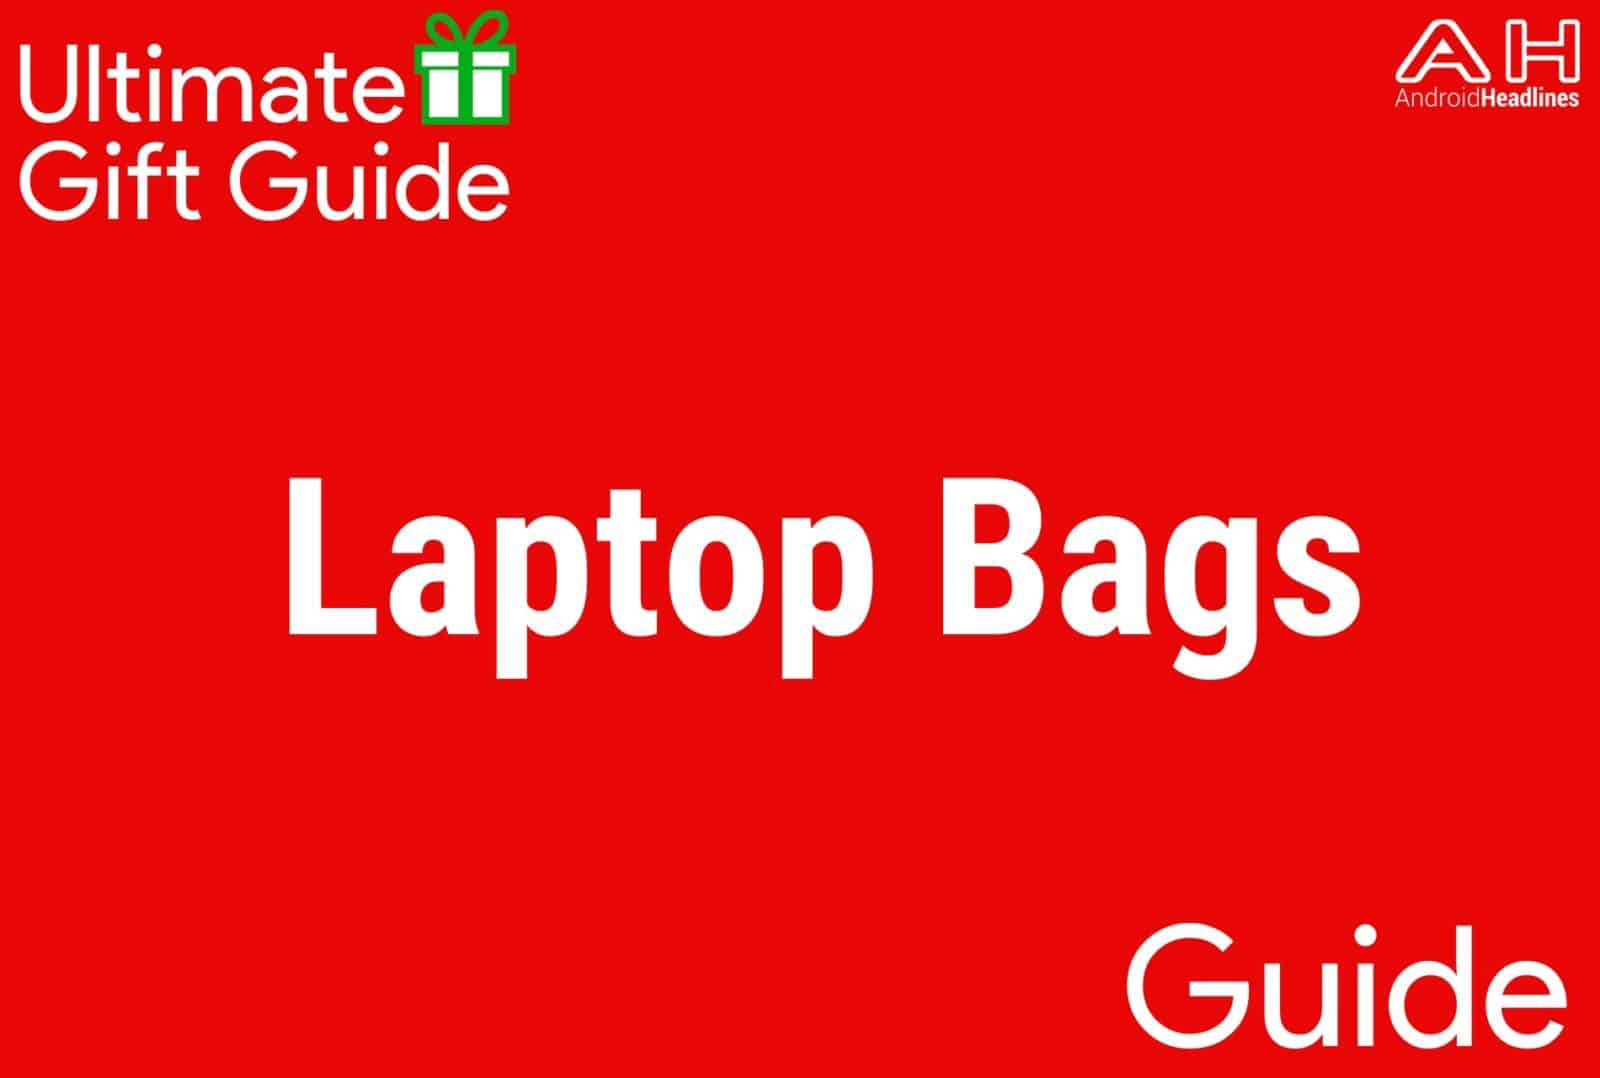 Laptop Bags - Gift Guide 2015